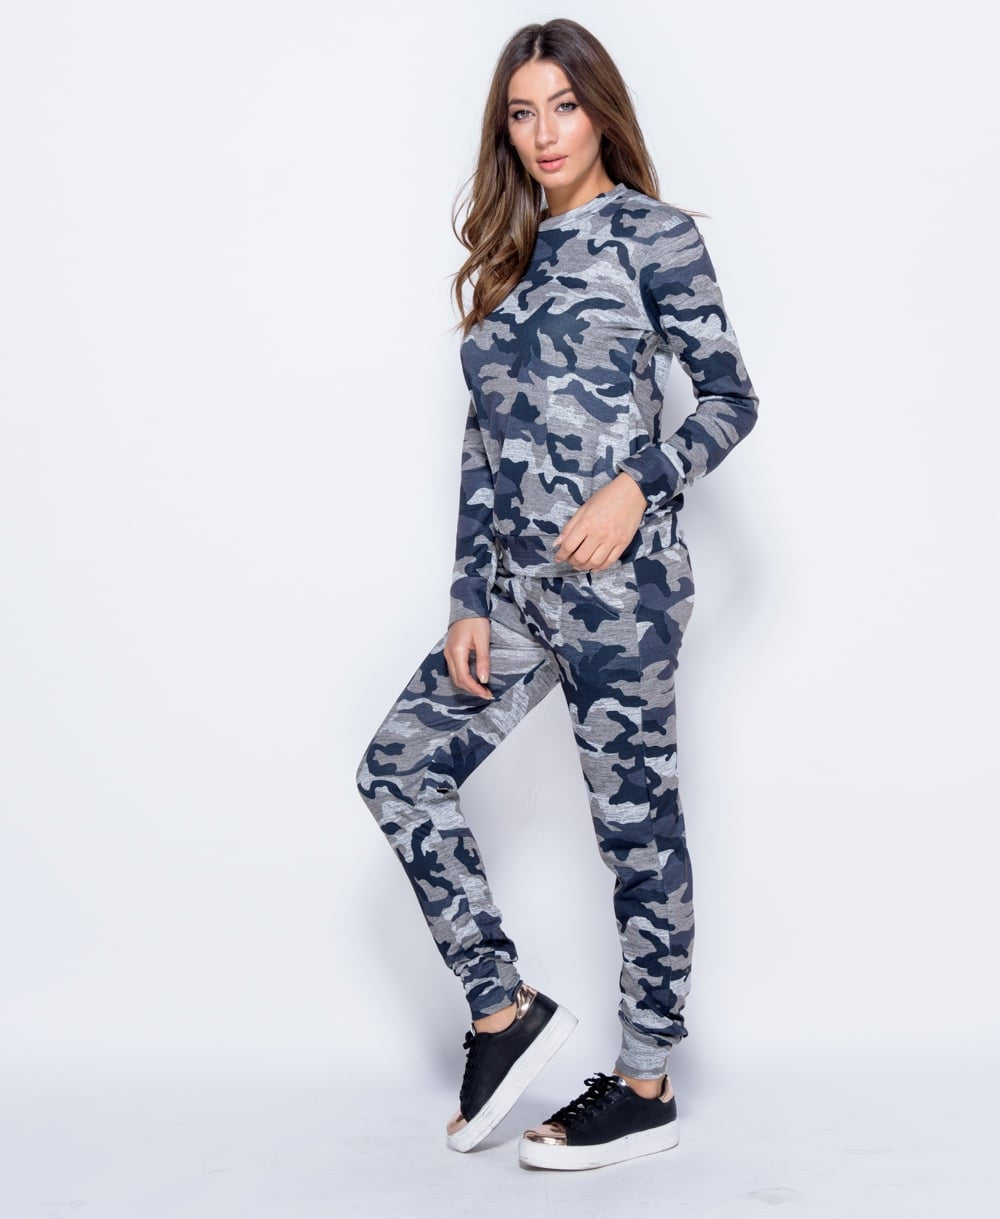 7d1d8f3377 Ladies Camouflage Co Ord Loungewear Set Top   Bottoms by Parisian ...